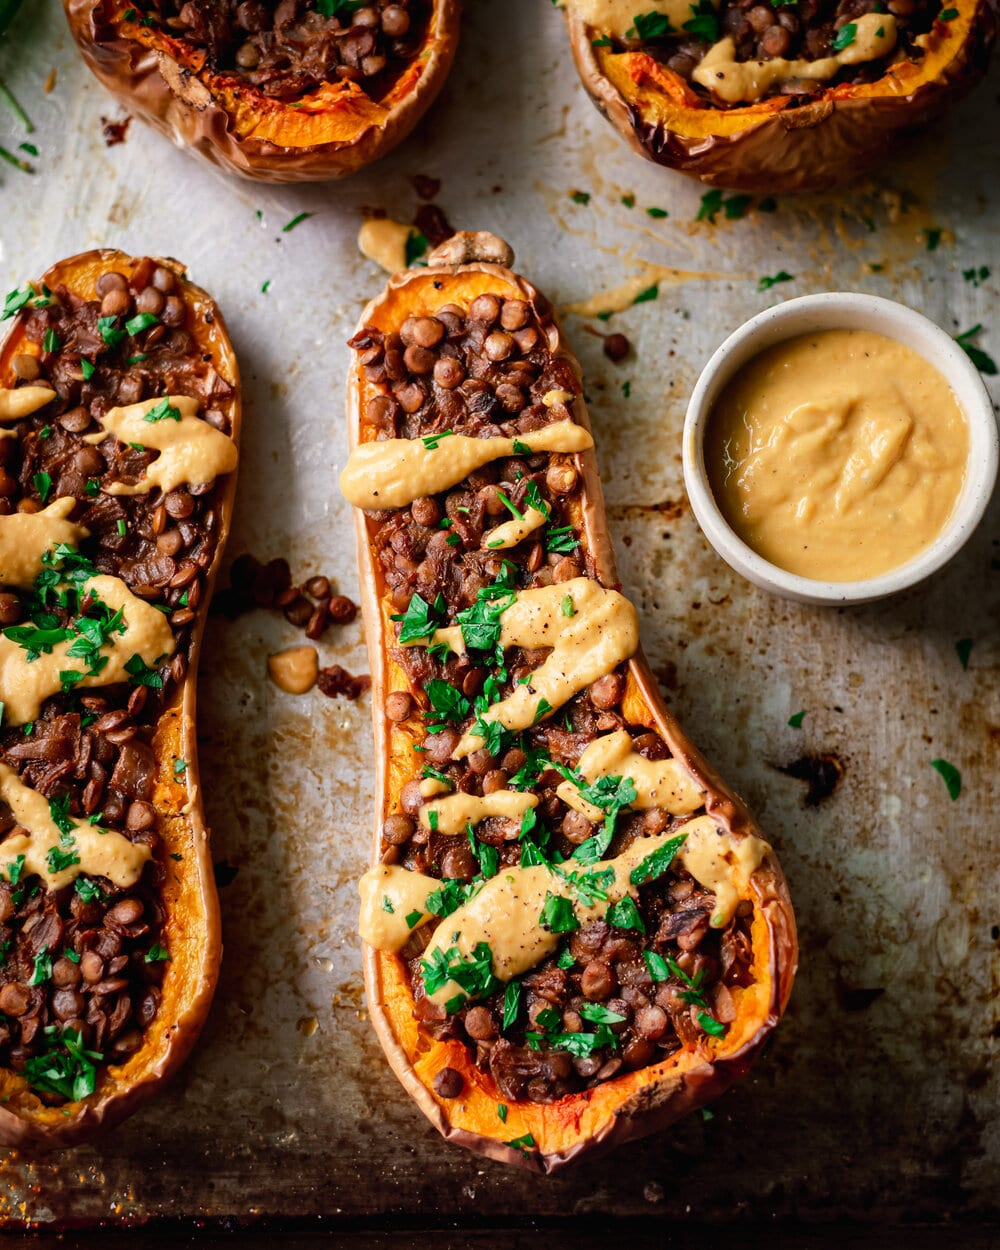 Vegan Sausage Stuffed Butternut Squash with creamy white sauce